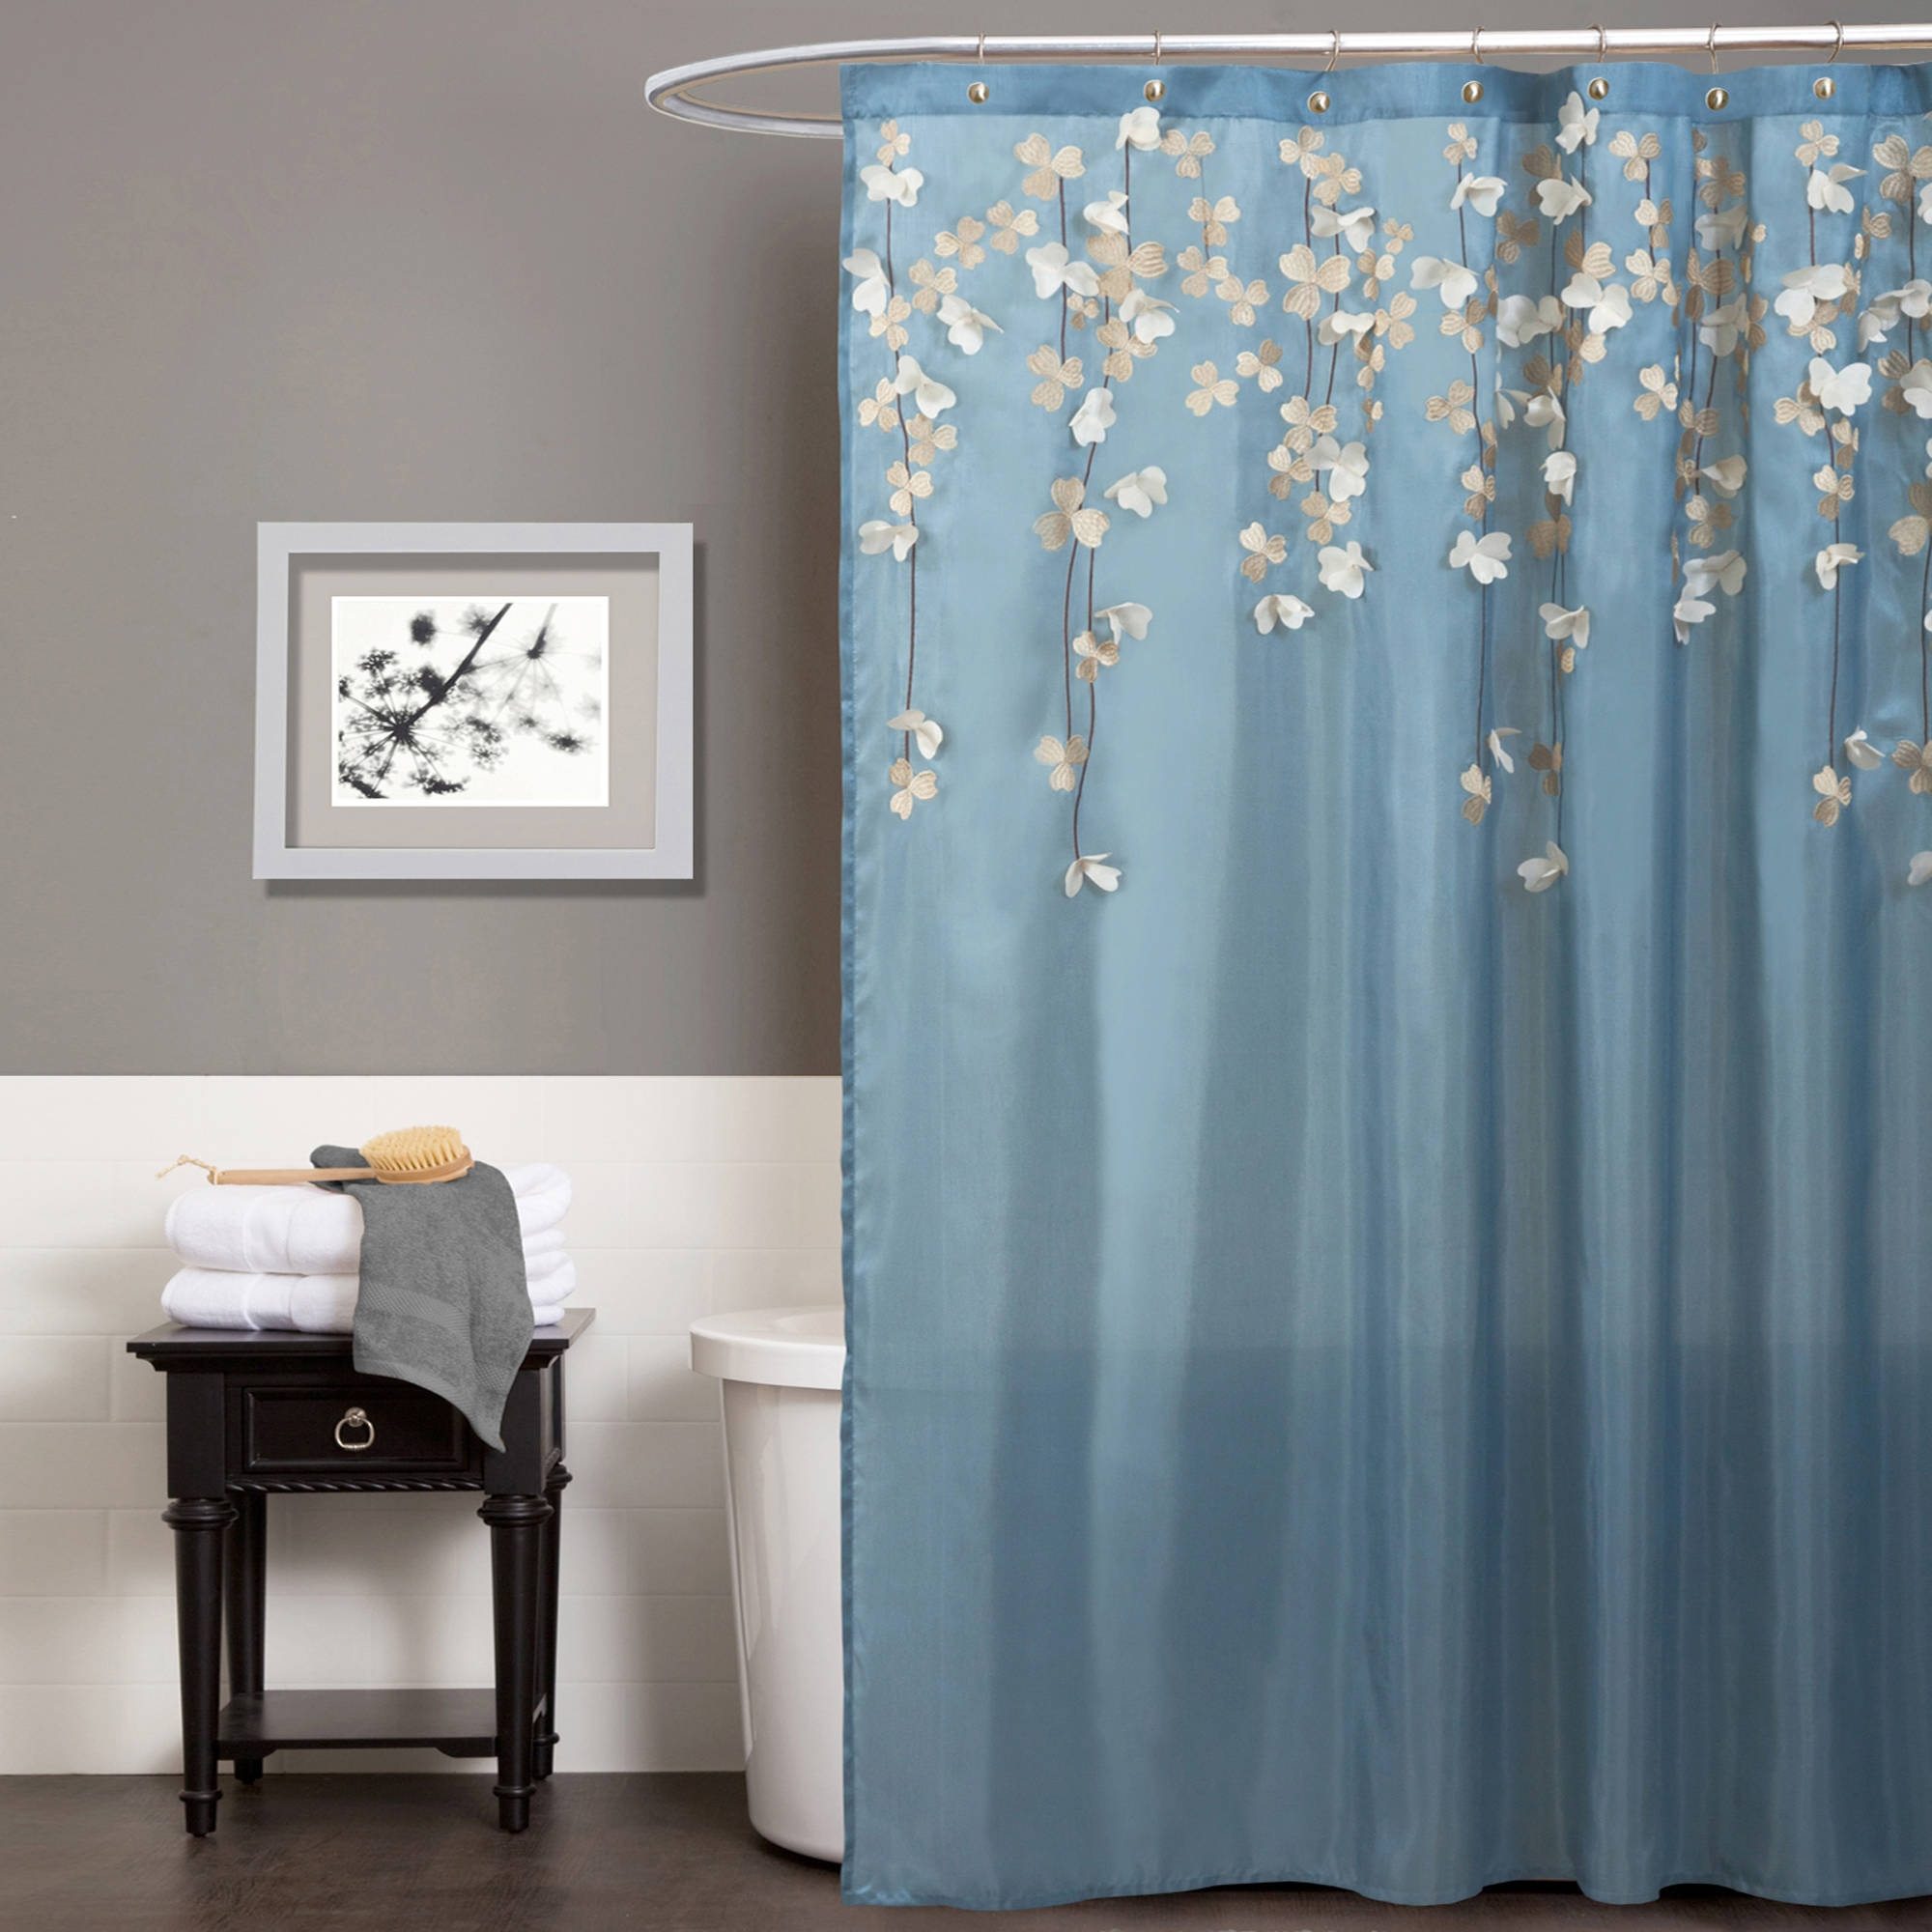 Coral Beach Blue Shower Curtain Shower Curtain Design intended for sizing 2000 X 2000